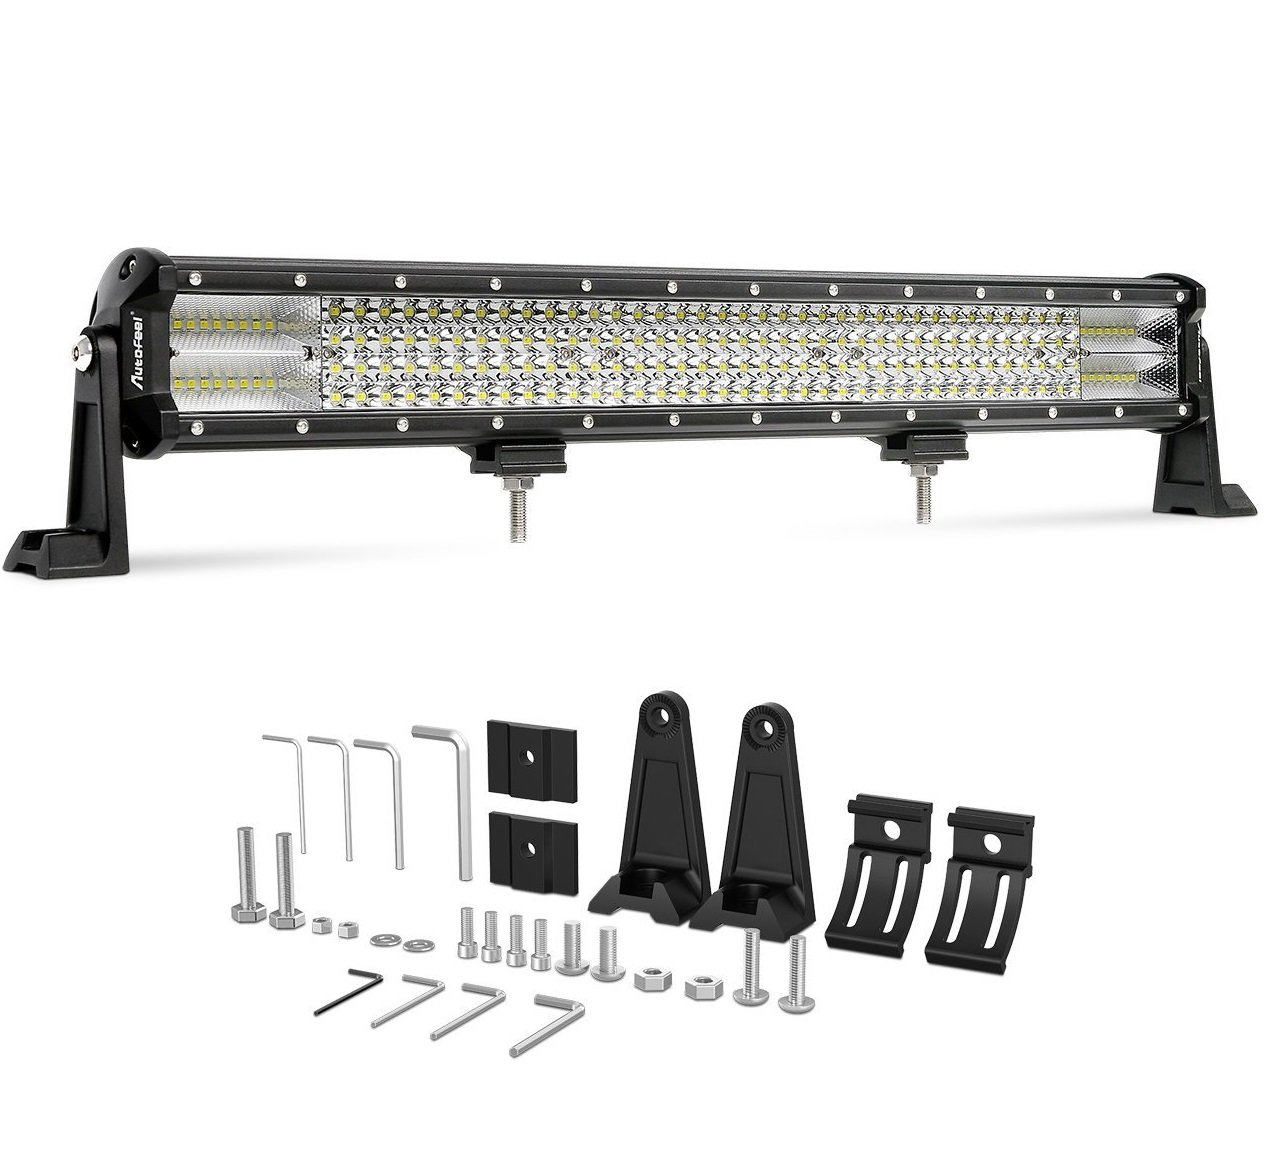 Led Light Bar Autofeel 23 Inch Quad Row Driving Lights Emergency Lighting Wiring Diagram Free About Spot Flood Combo Beam Of Road With Slide Mounting